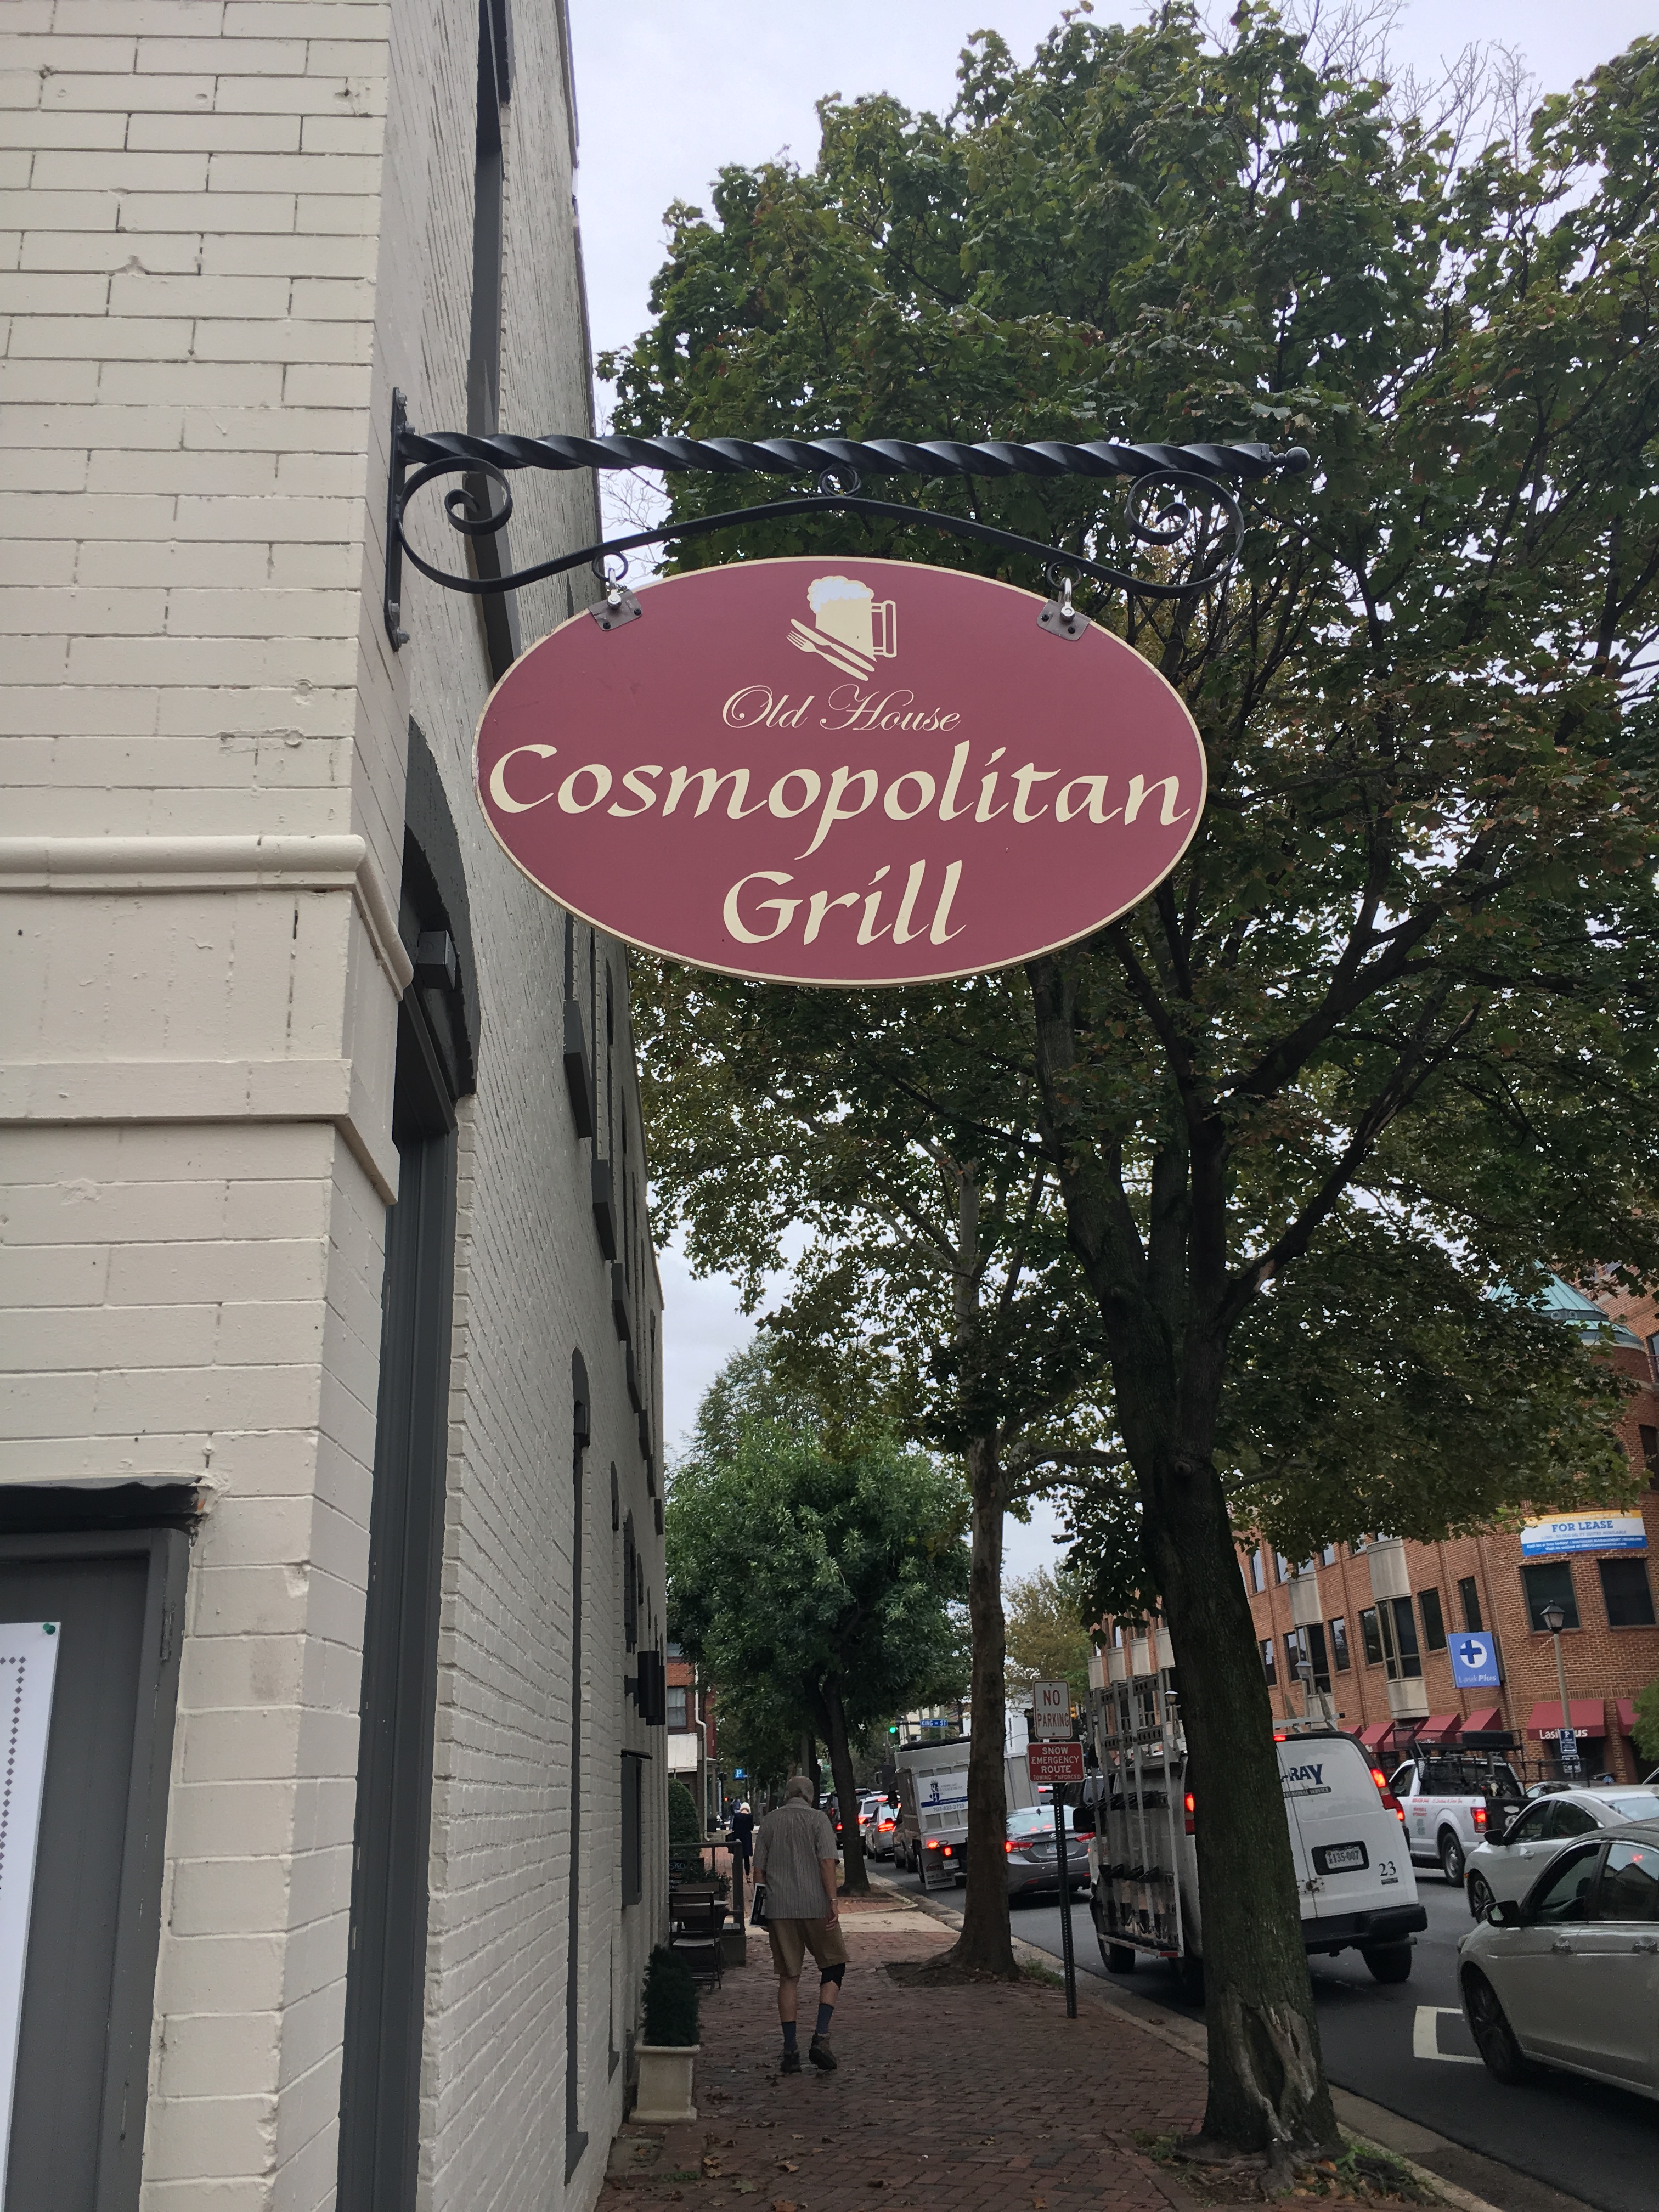 Old House Cosmopolitan Grill – A Taste of Germany In Old Town!